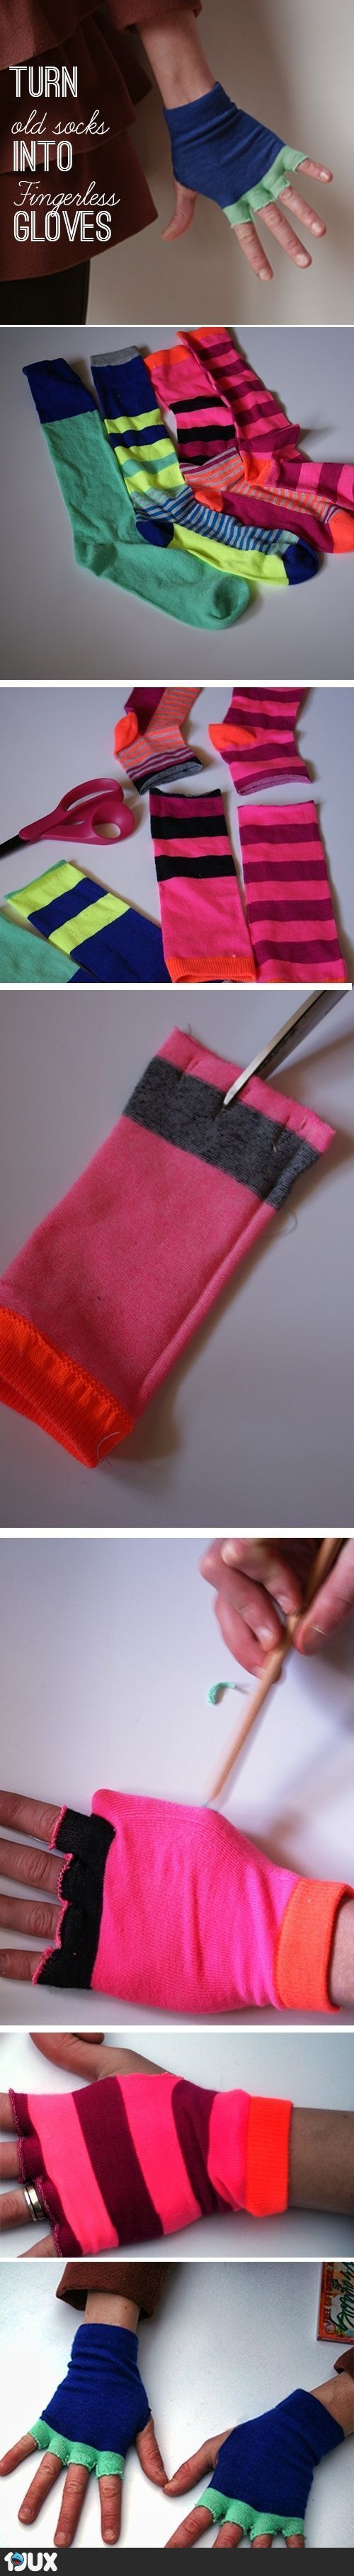 Turn old socks into gloves